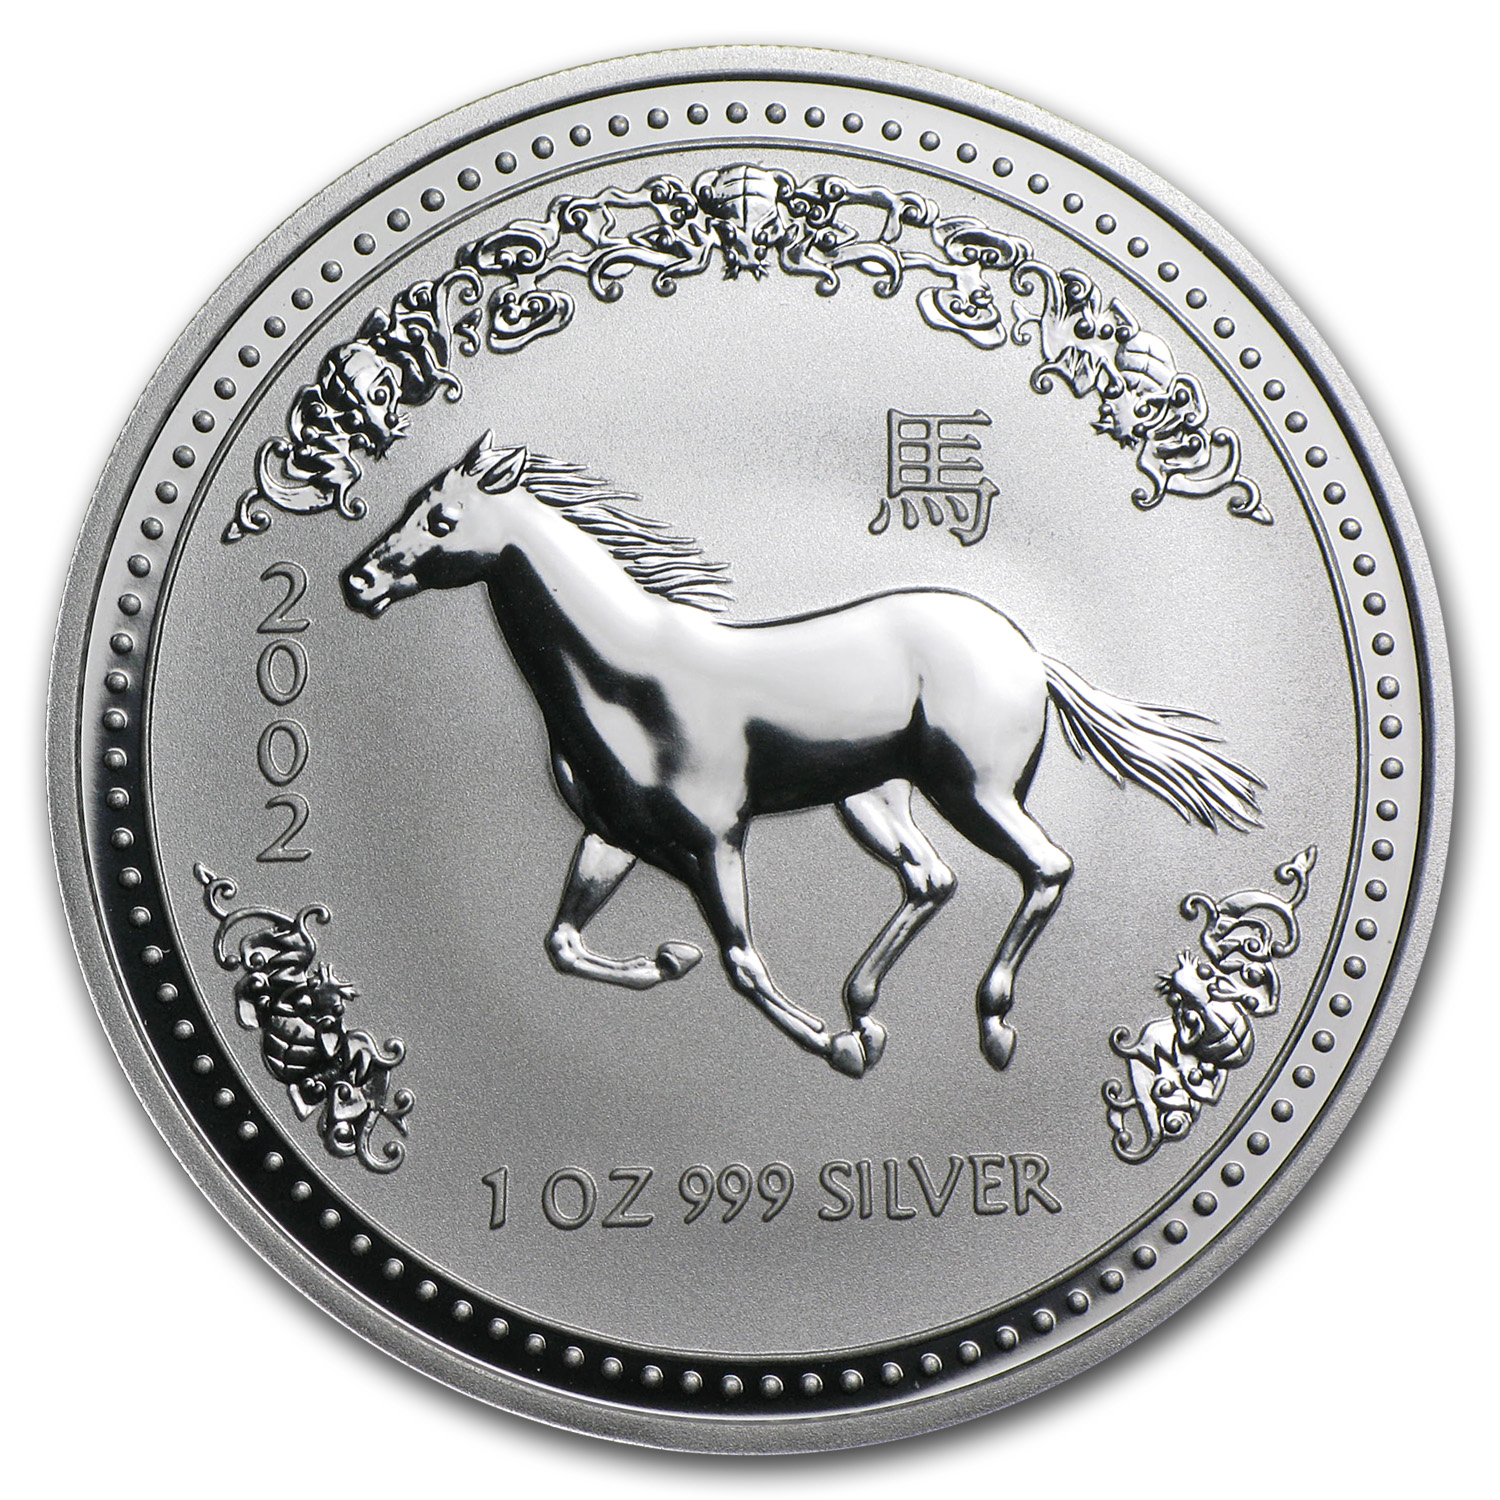 2002 Australia 1 oz Silver Year of the Horse BU